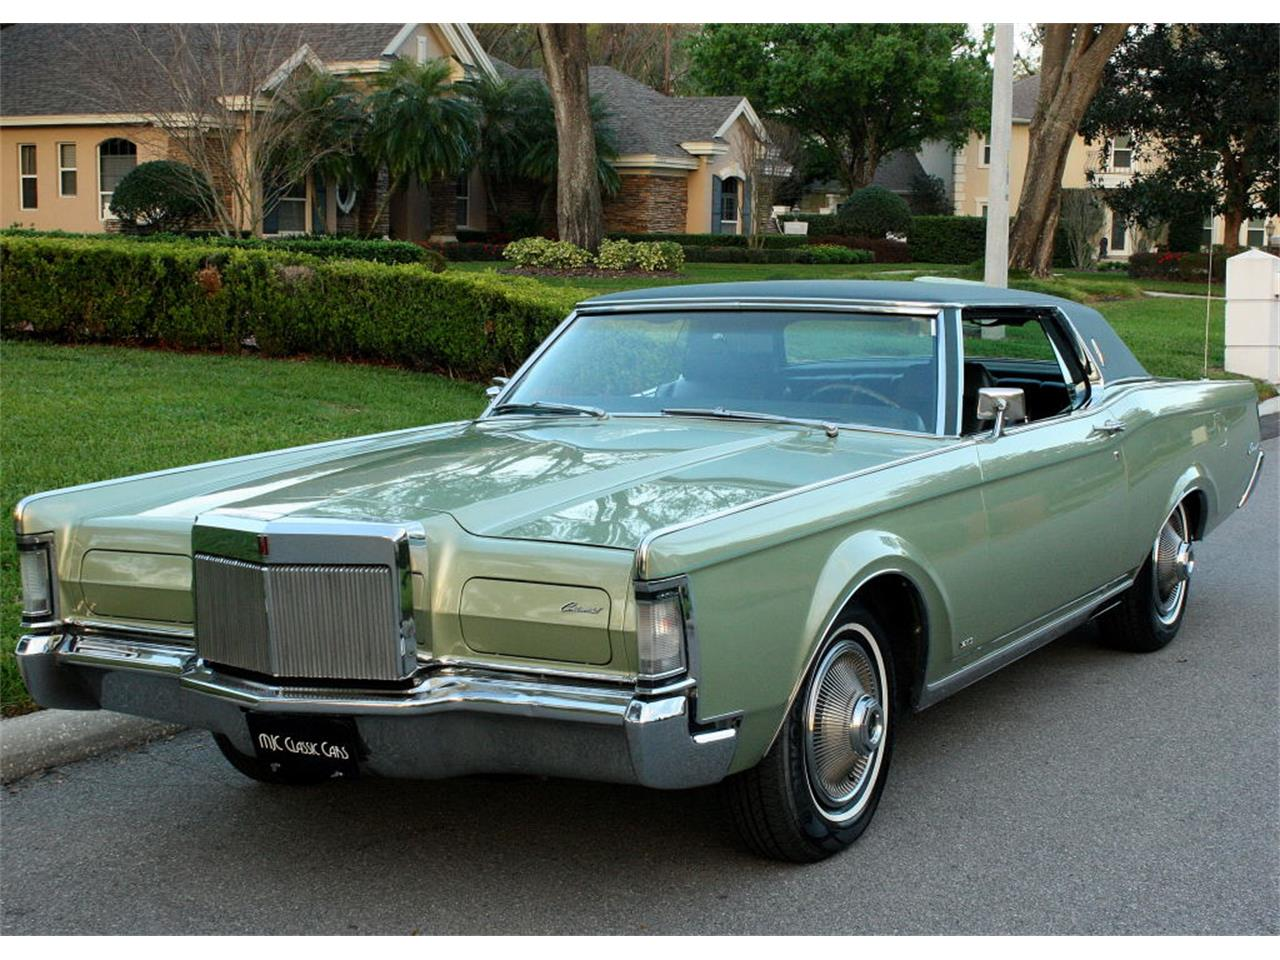 1969 Lincoln Continental Mark Iii For Sale In Lakeland Fl Classiccarsbay Com